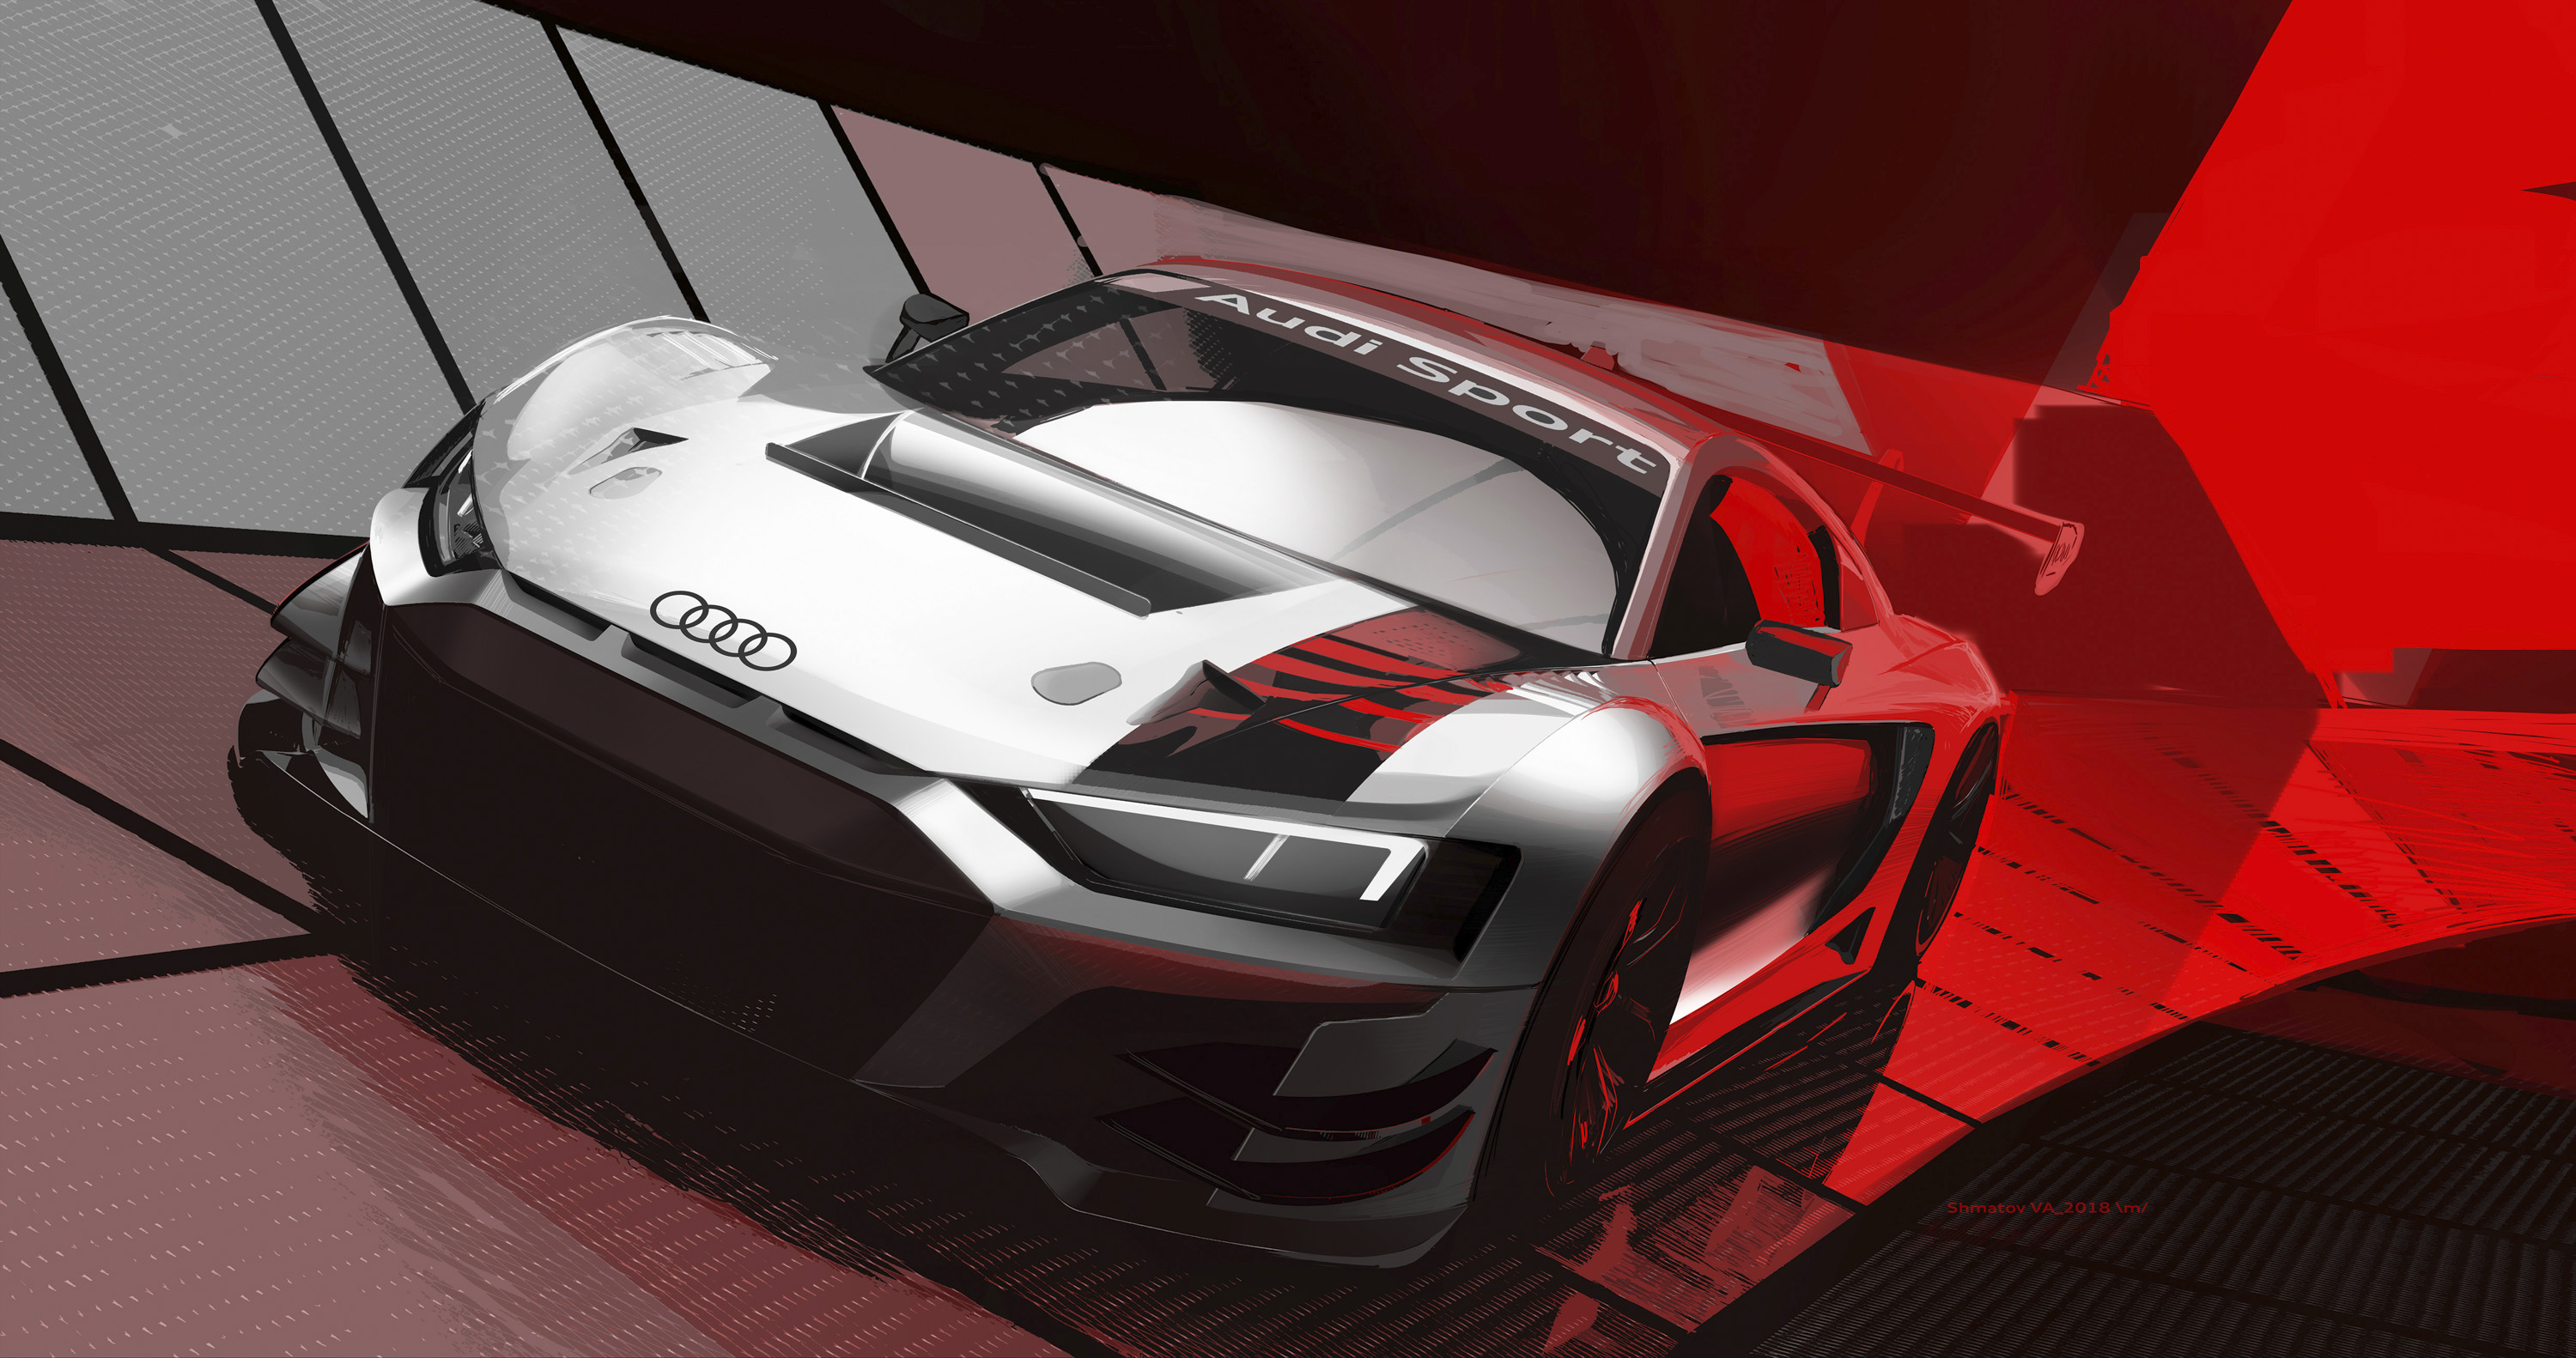 2019 Audi R8 Lms Gt3 Top Speed